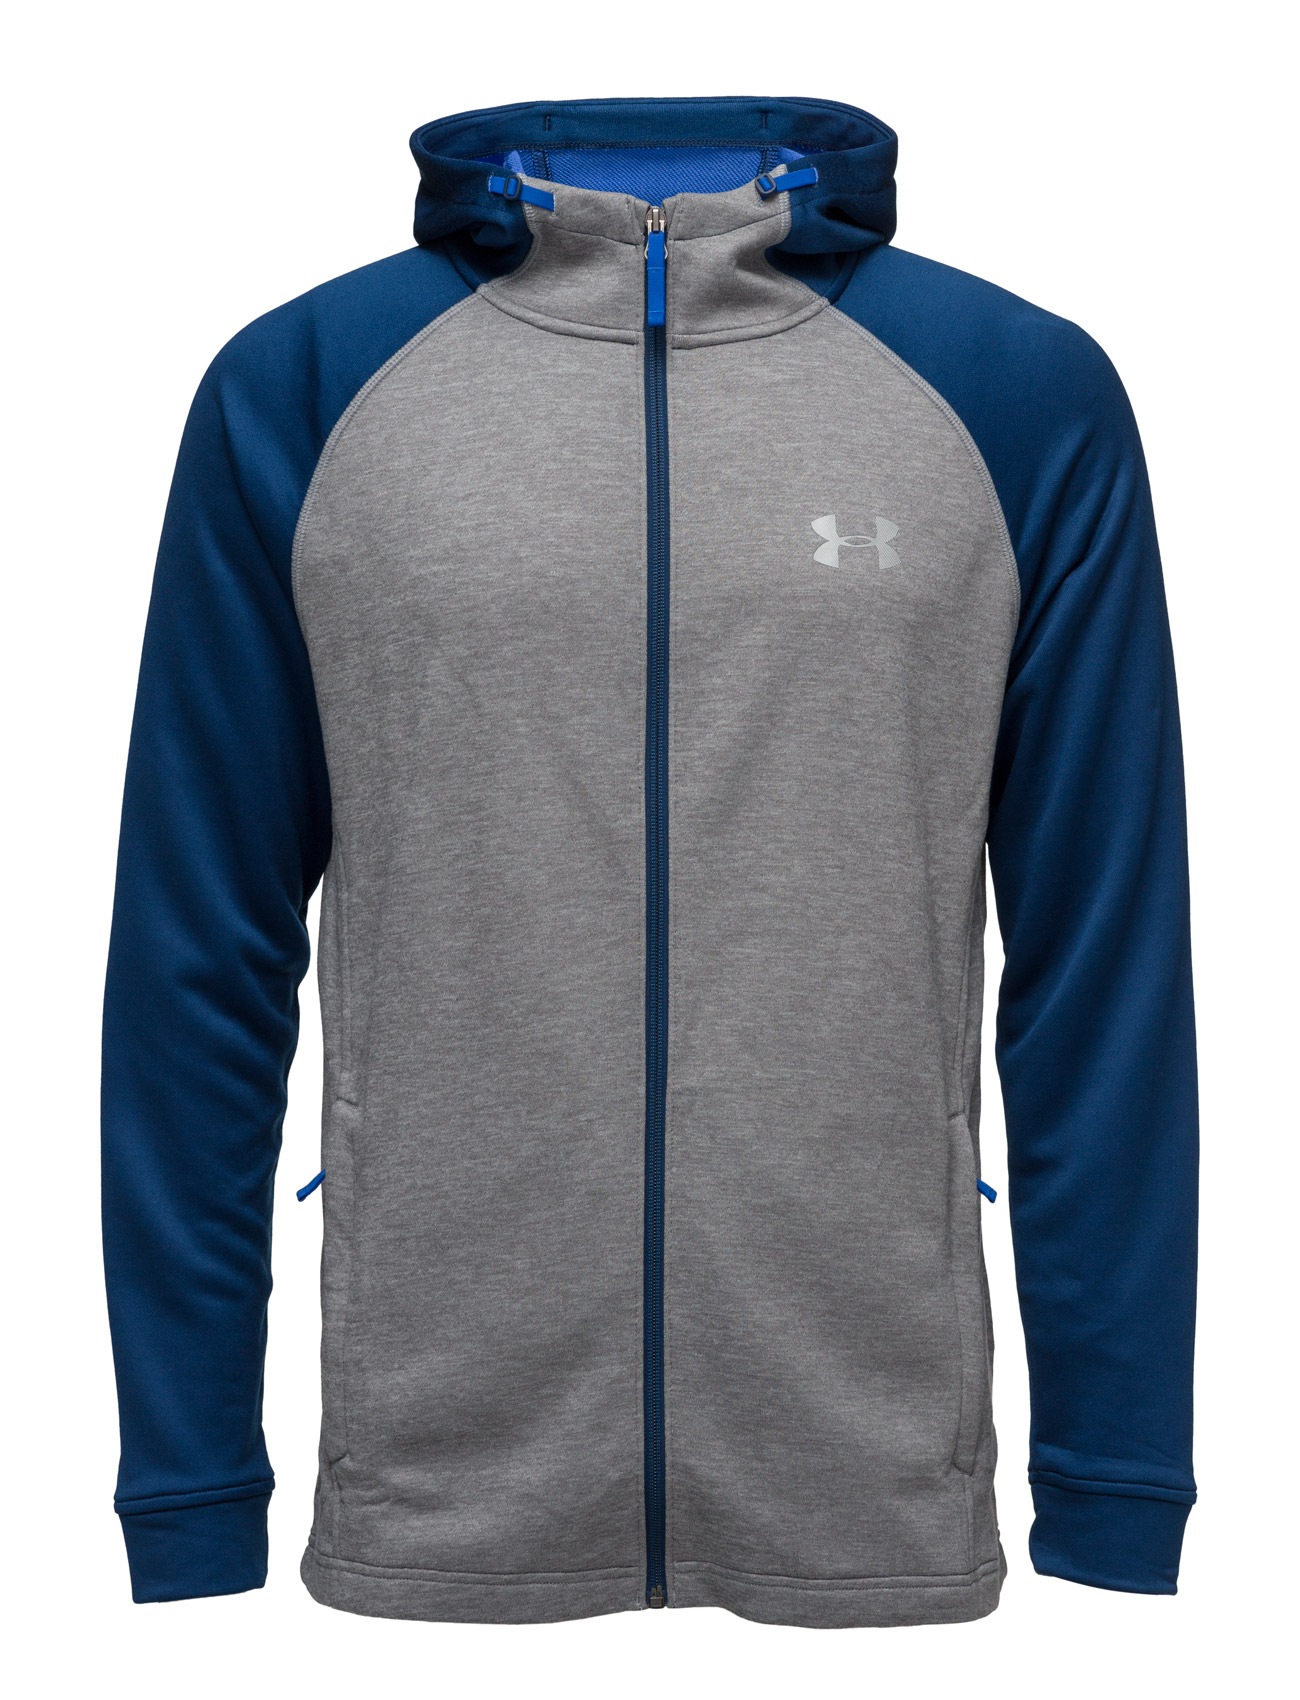 Tech Terry Fitted Fz Hoodie Under Armour Sports toppe til Mænd i